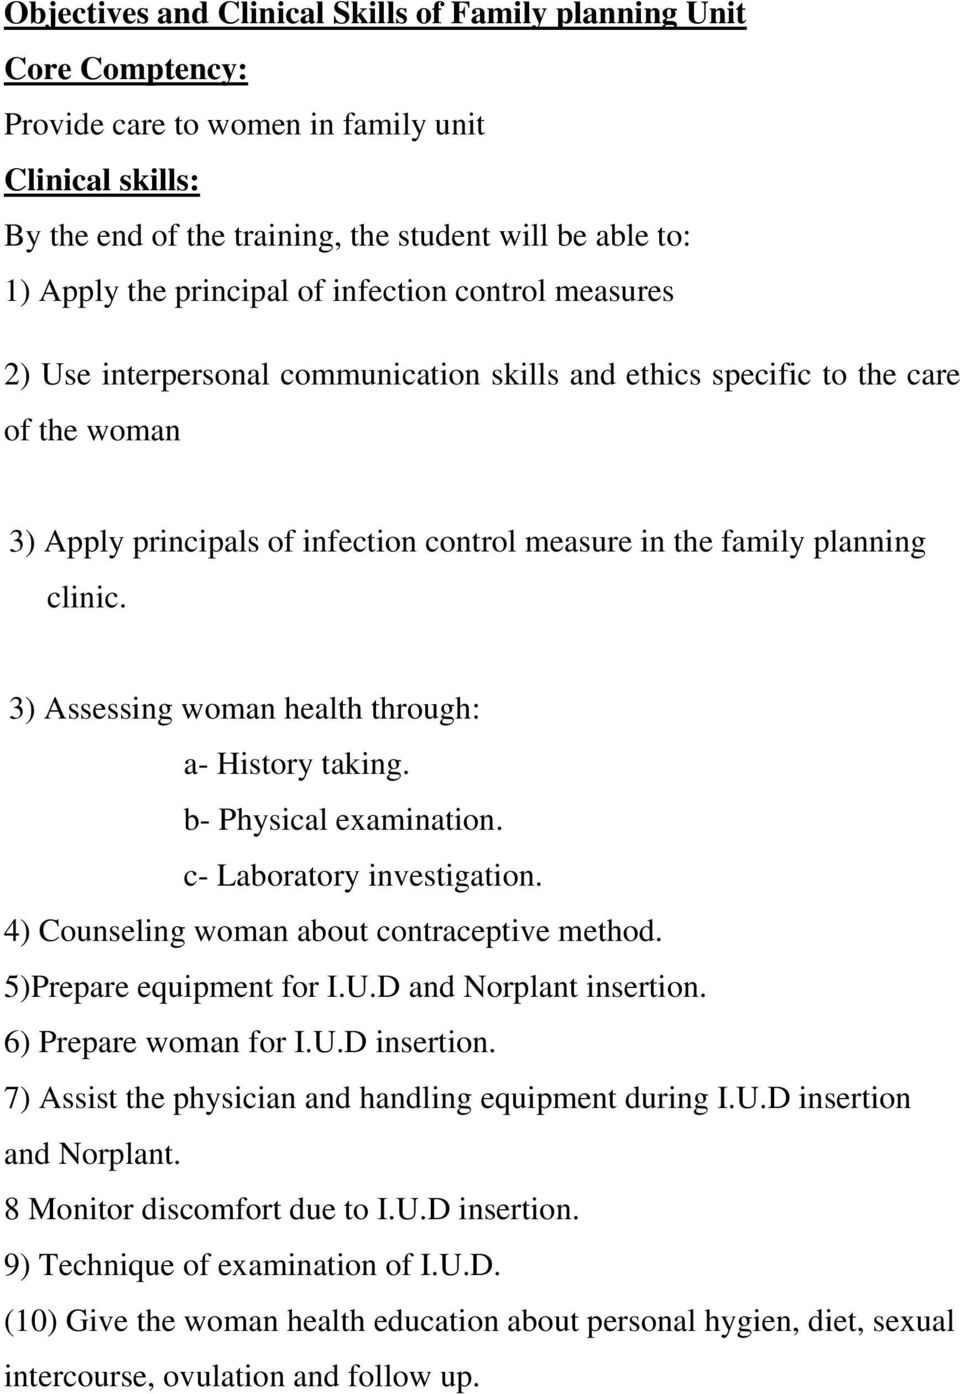 b- Physical examination. c- Laboratory investigation. 4) Counseling woman about contraceptive method. 5)Prepare equipment for I.U.D and Norplant insertion. 6) Prepare woman for I.U.D insertion.